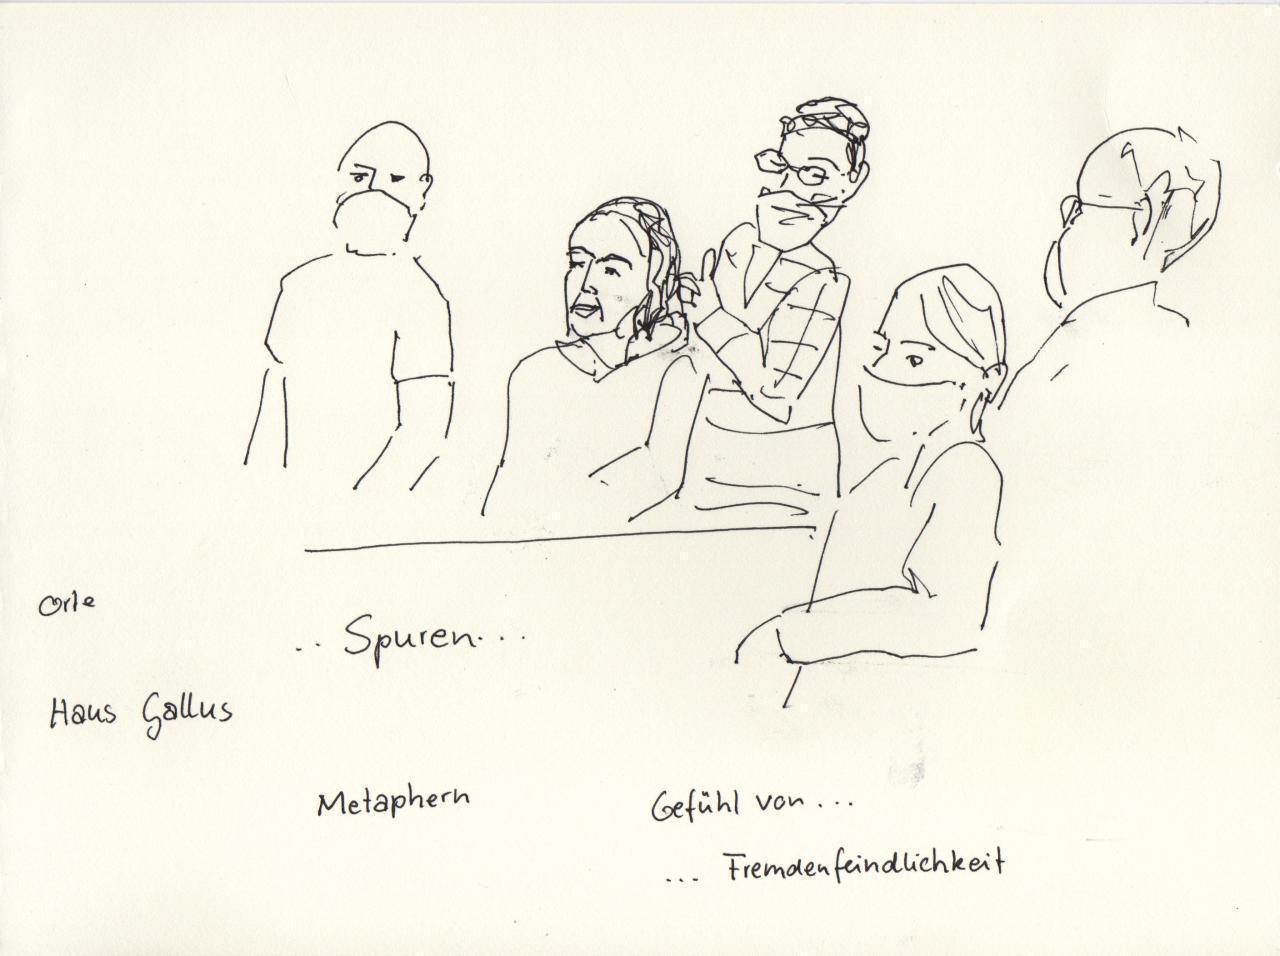 Zeichnung einer Workshop-Situation